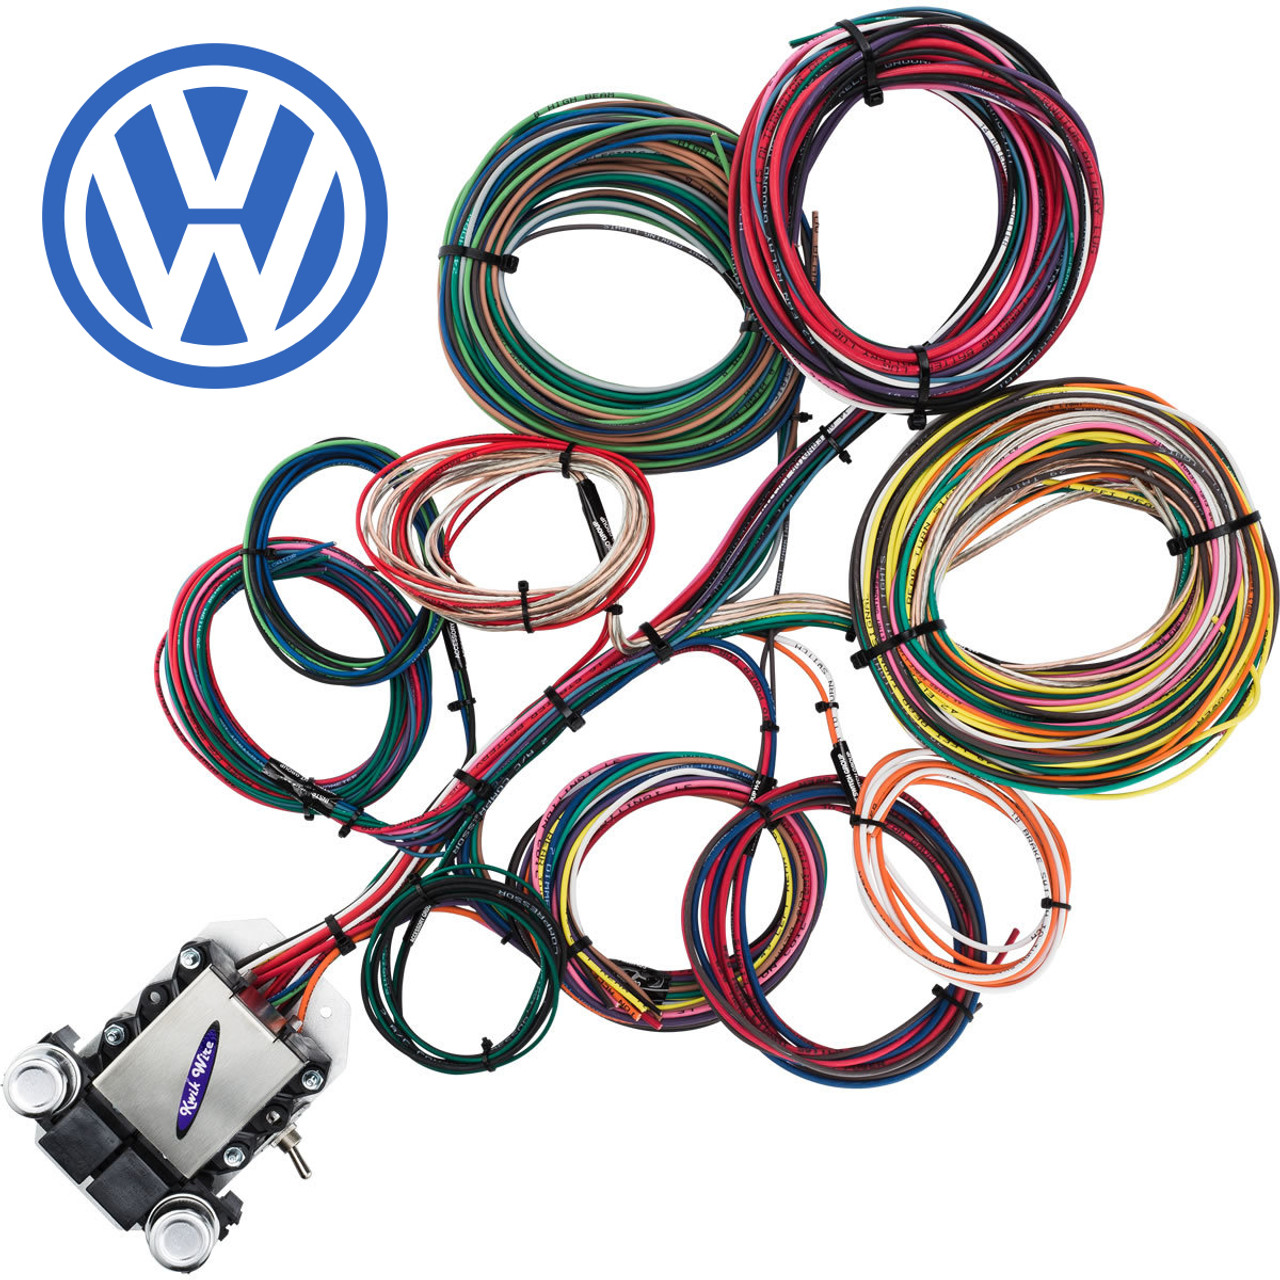 hight resolution of 14 circuit vw wire harness kwikwire com electrify your ridevw wire harness 10